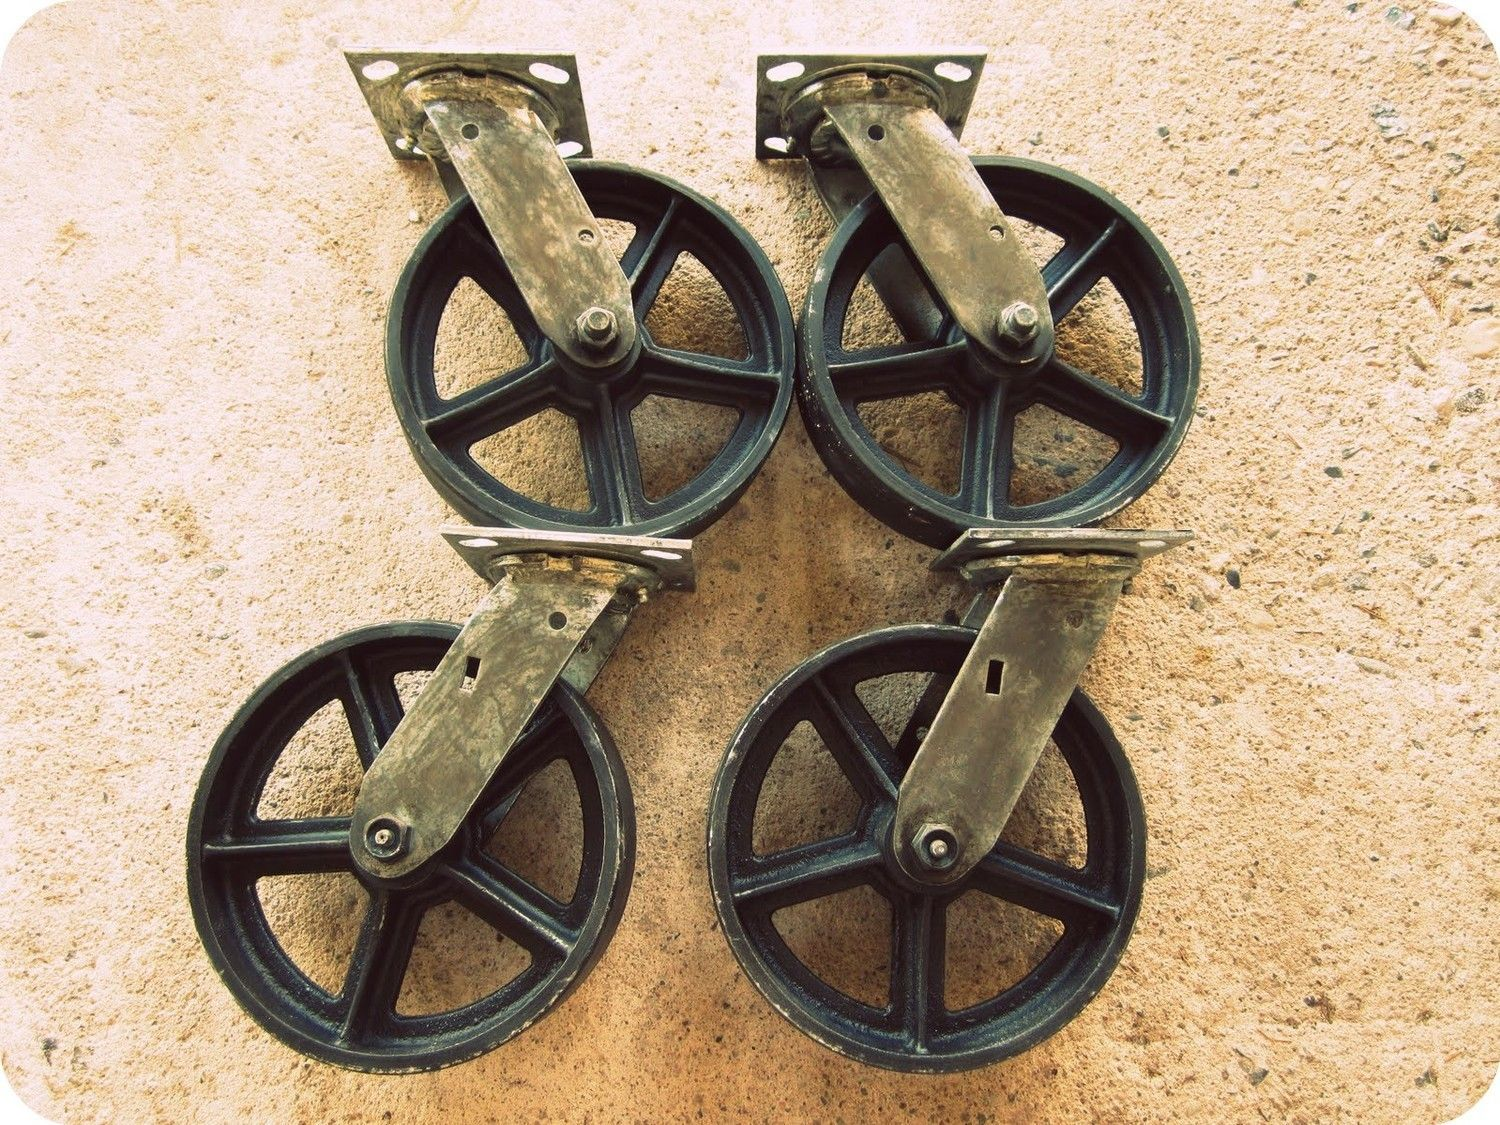 Reproduction Cast Iron Casters Vintage Swiveling 8 Inch Caster Wheels Antique Casters 8tm Vintage Casters Metal Casters Large Caster Wheels